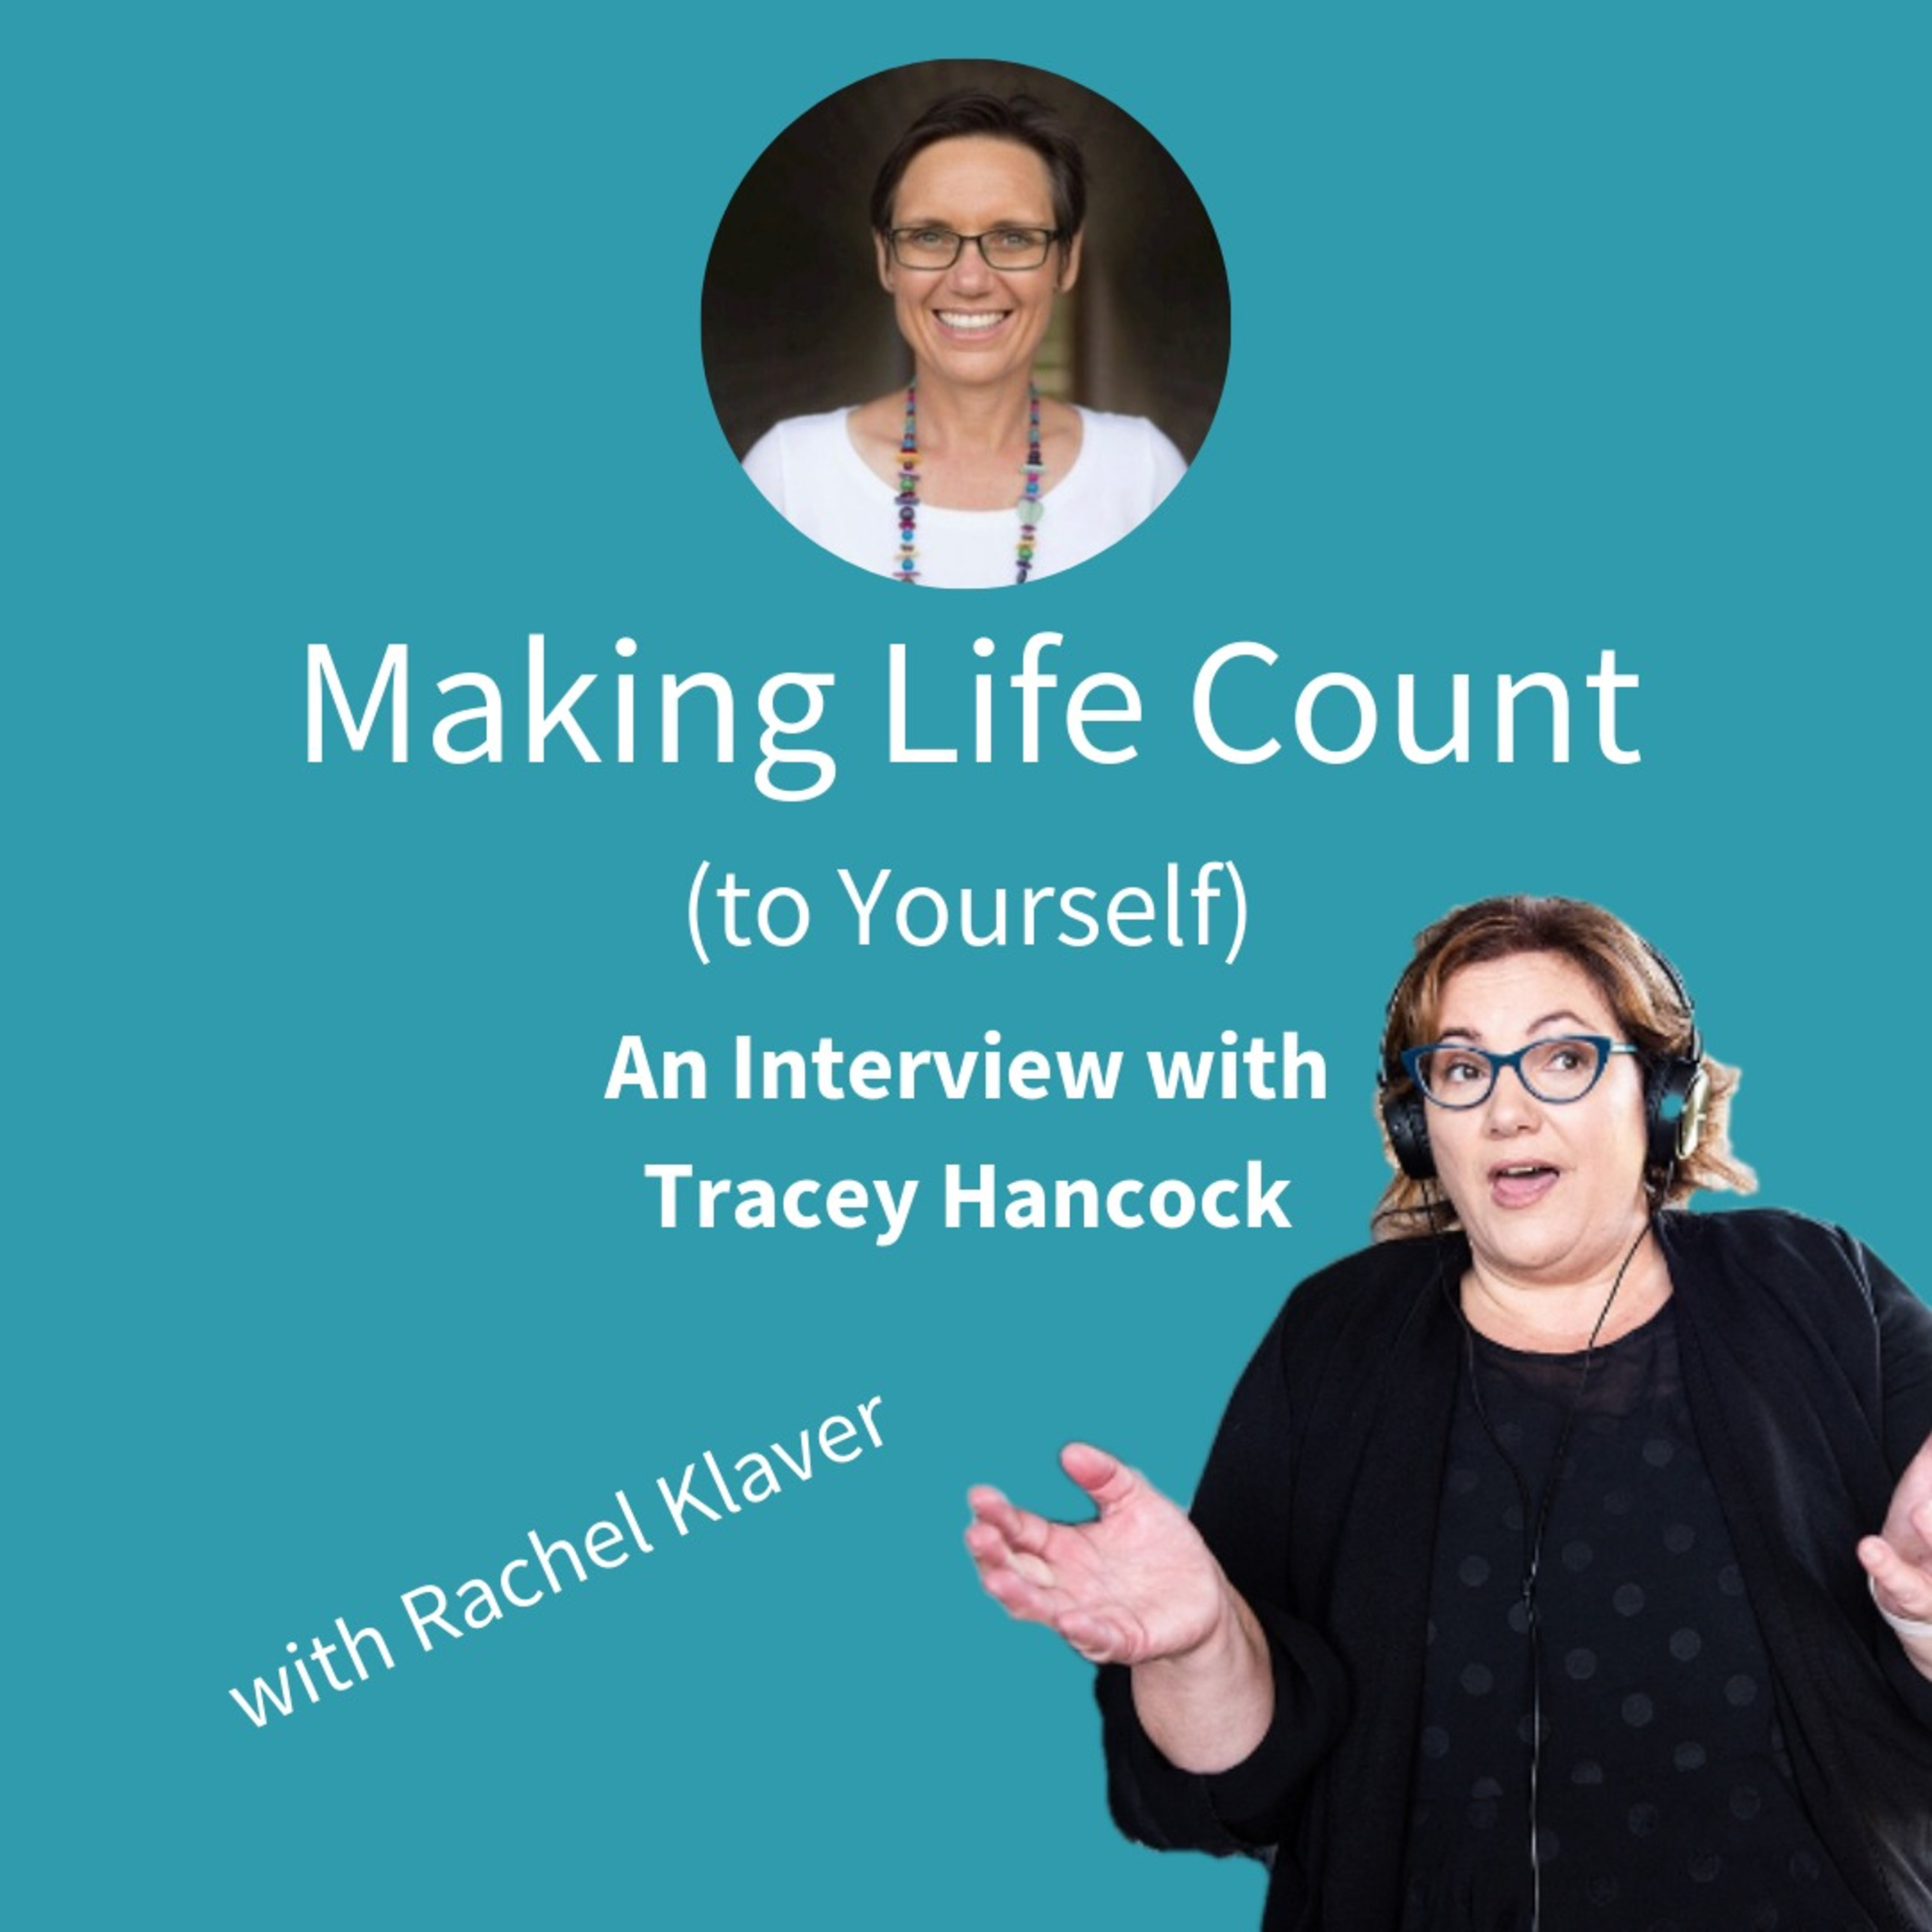 Making Life Count to Yourself - An interview with Tracey Hancock